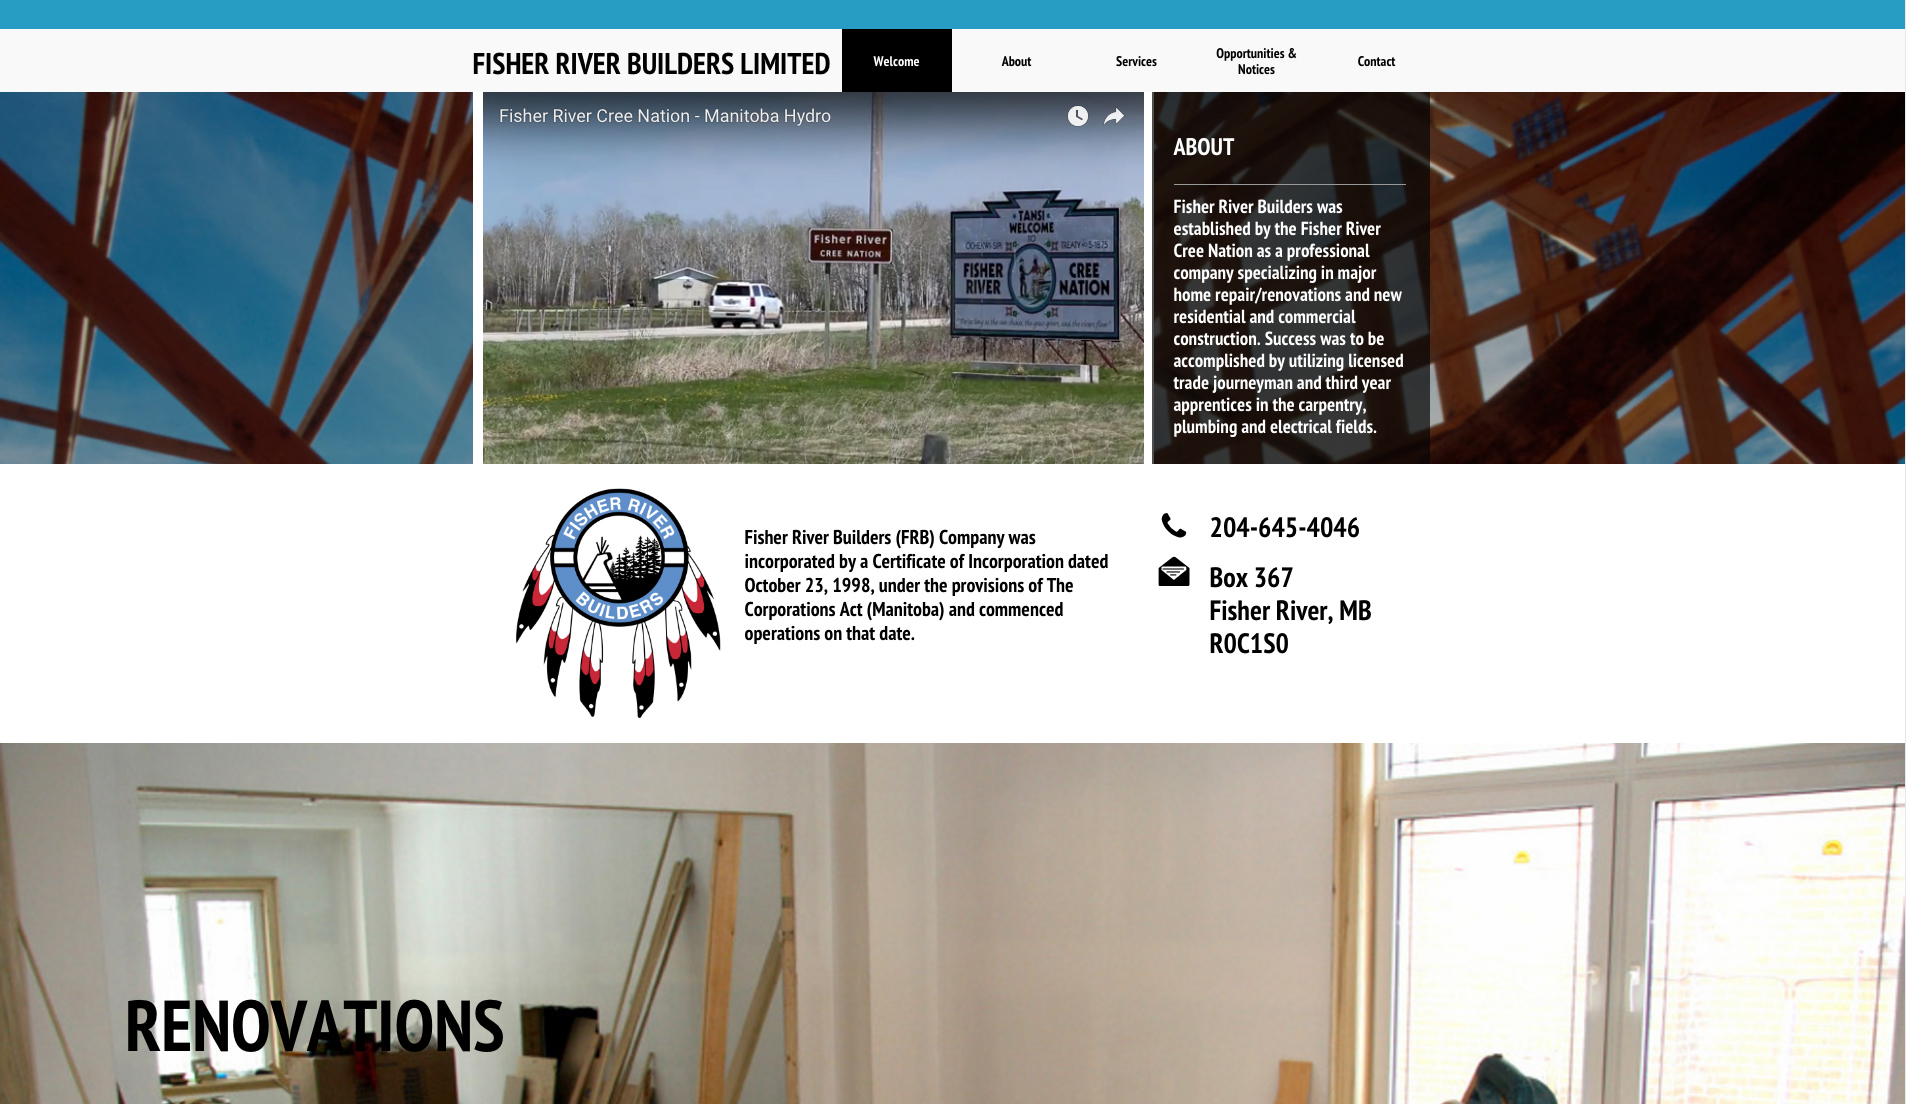 Fisher River Builders Limited - Light Plan